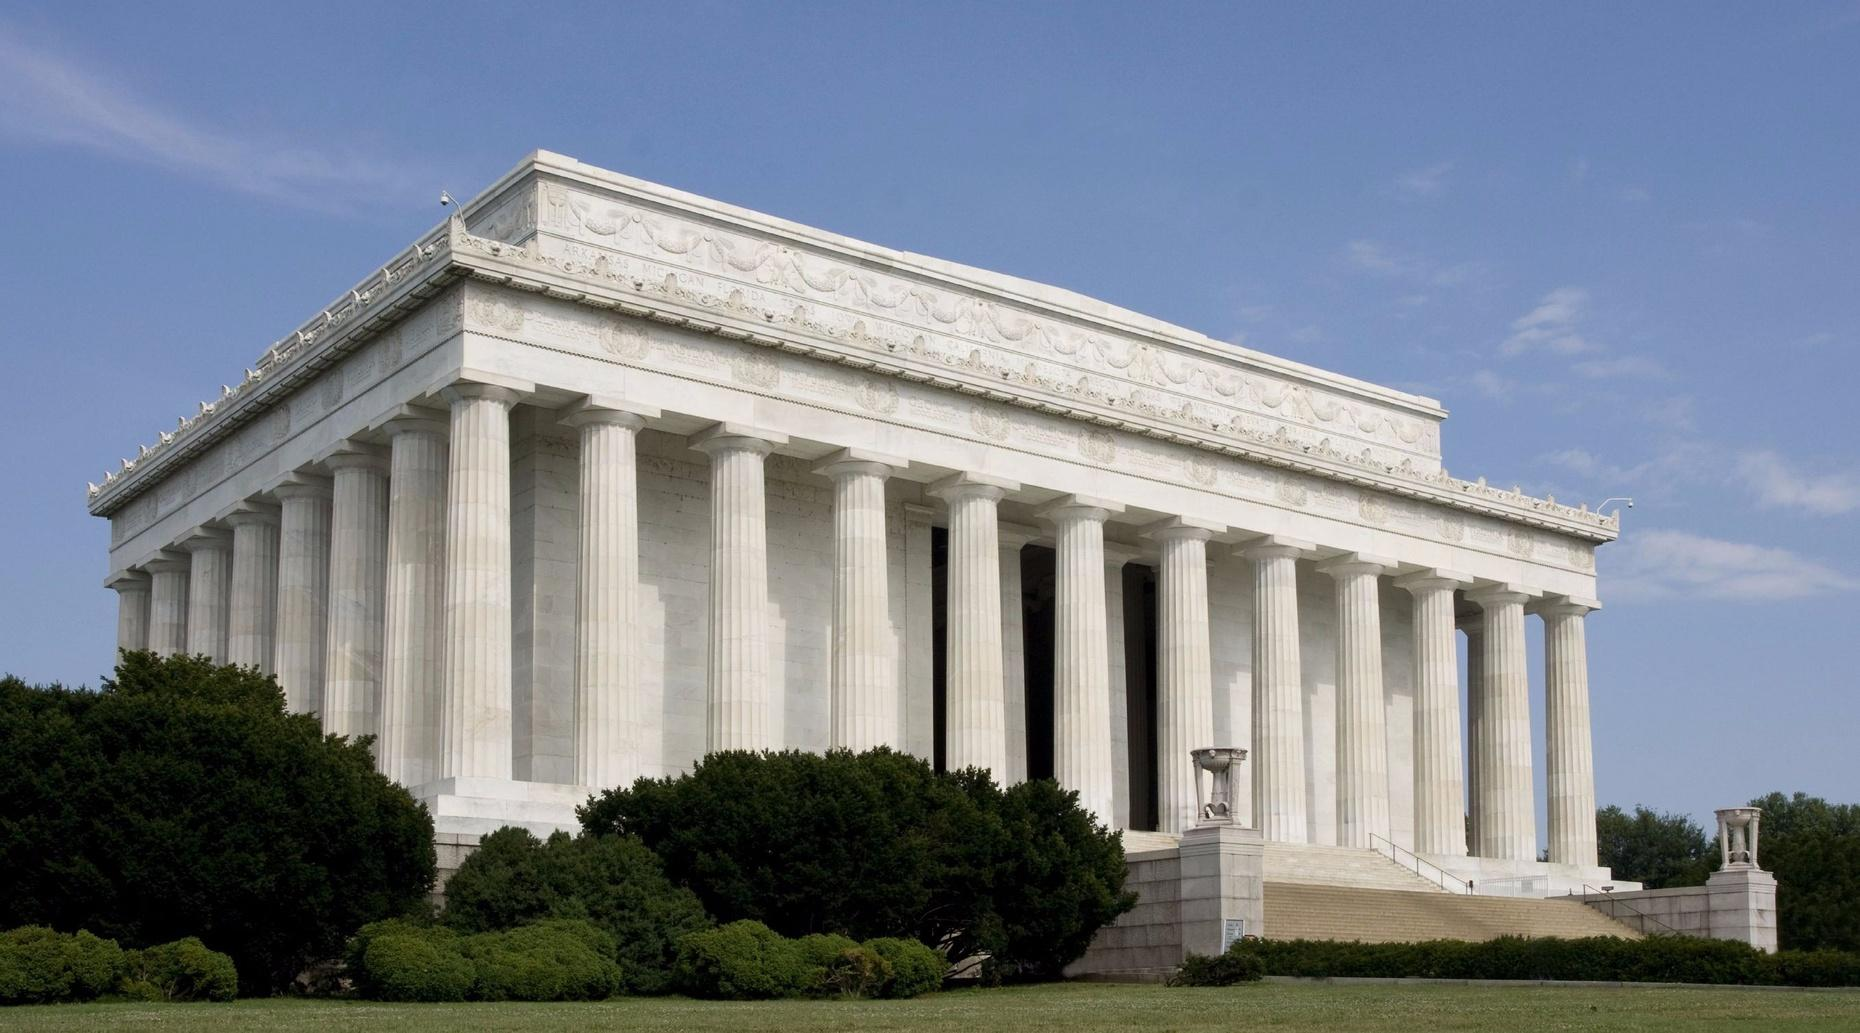 6-Hour Bus Tour of Washington D.C. Monuments